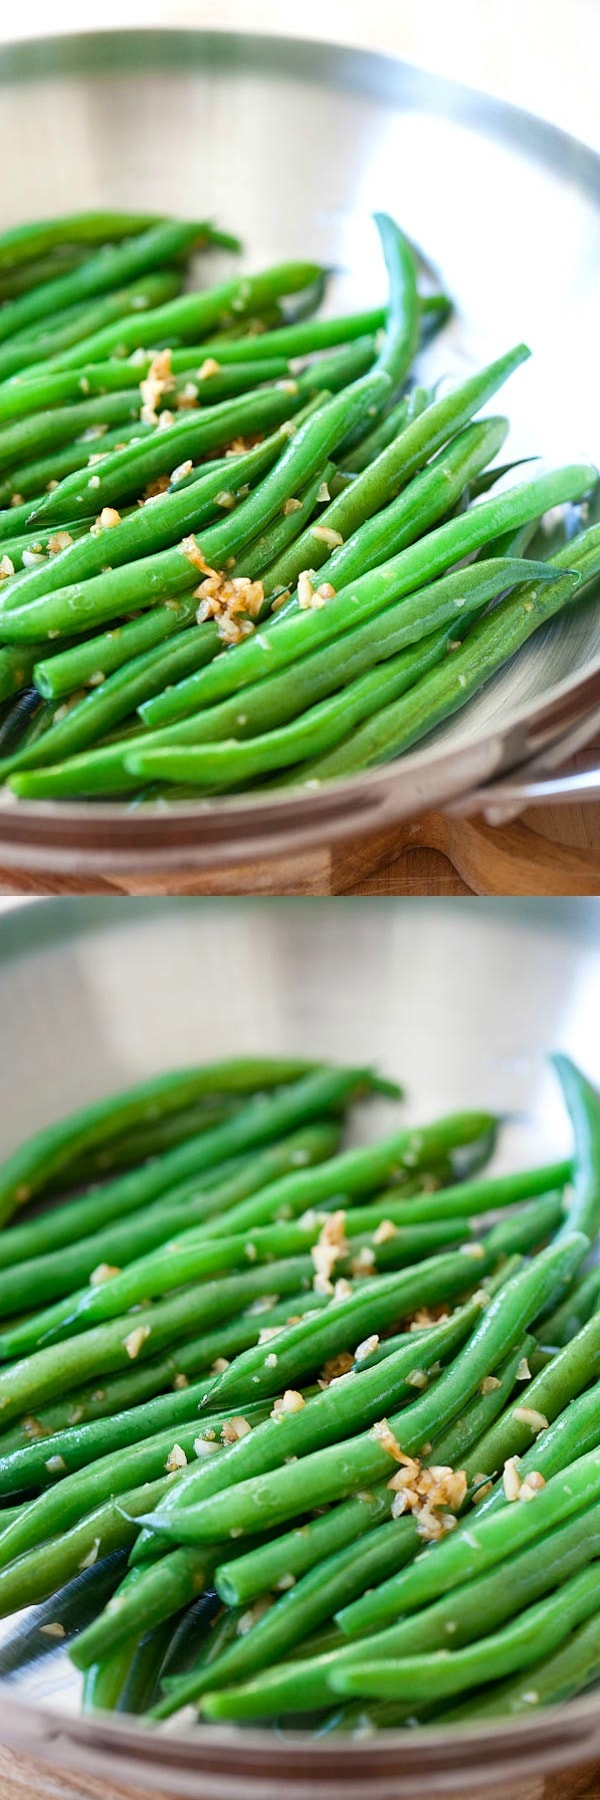 Garlic Green Beans - 10-min stir-fry green beans recipe with garlic. Super healthy, easy and budget-friendly for the entire family.  rasamalaysia.com